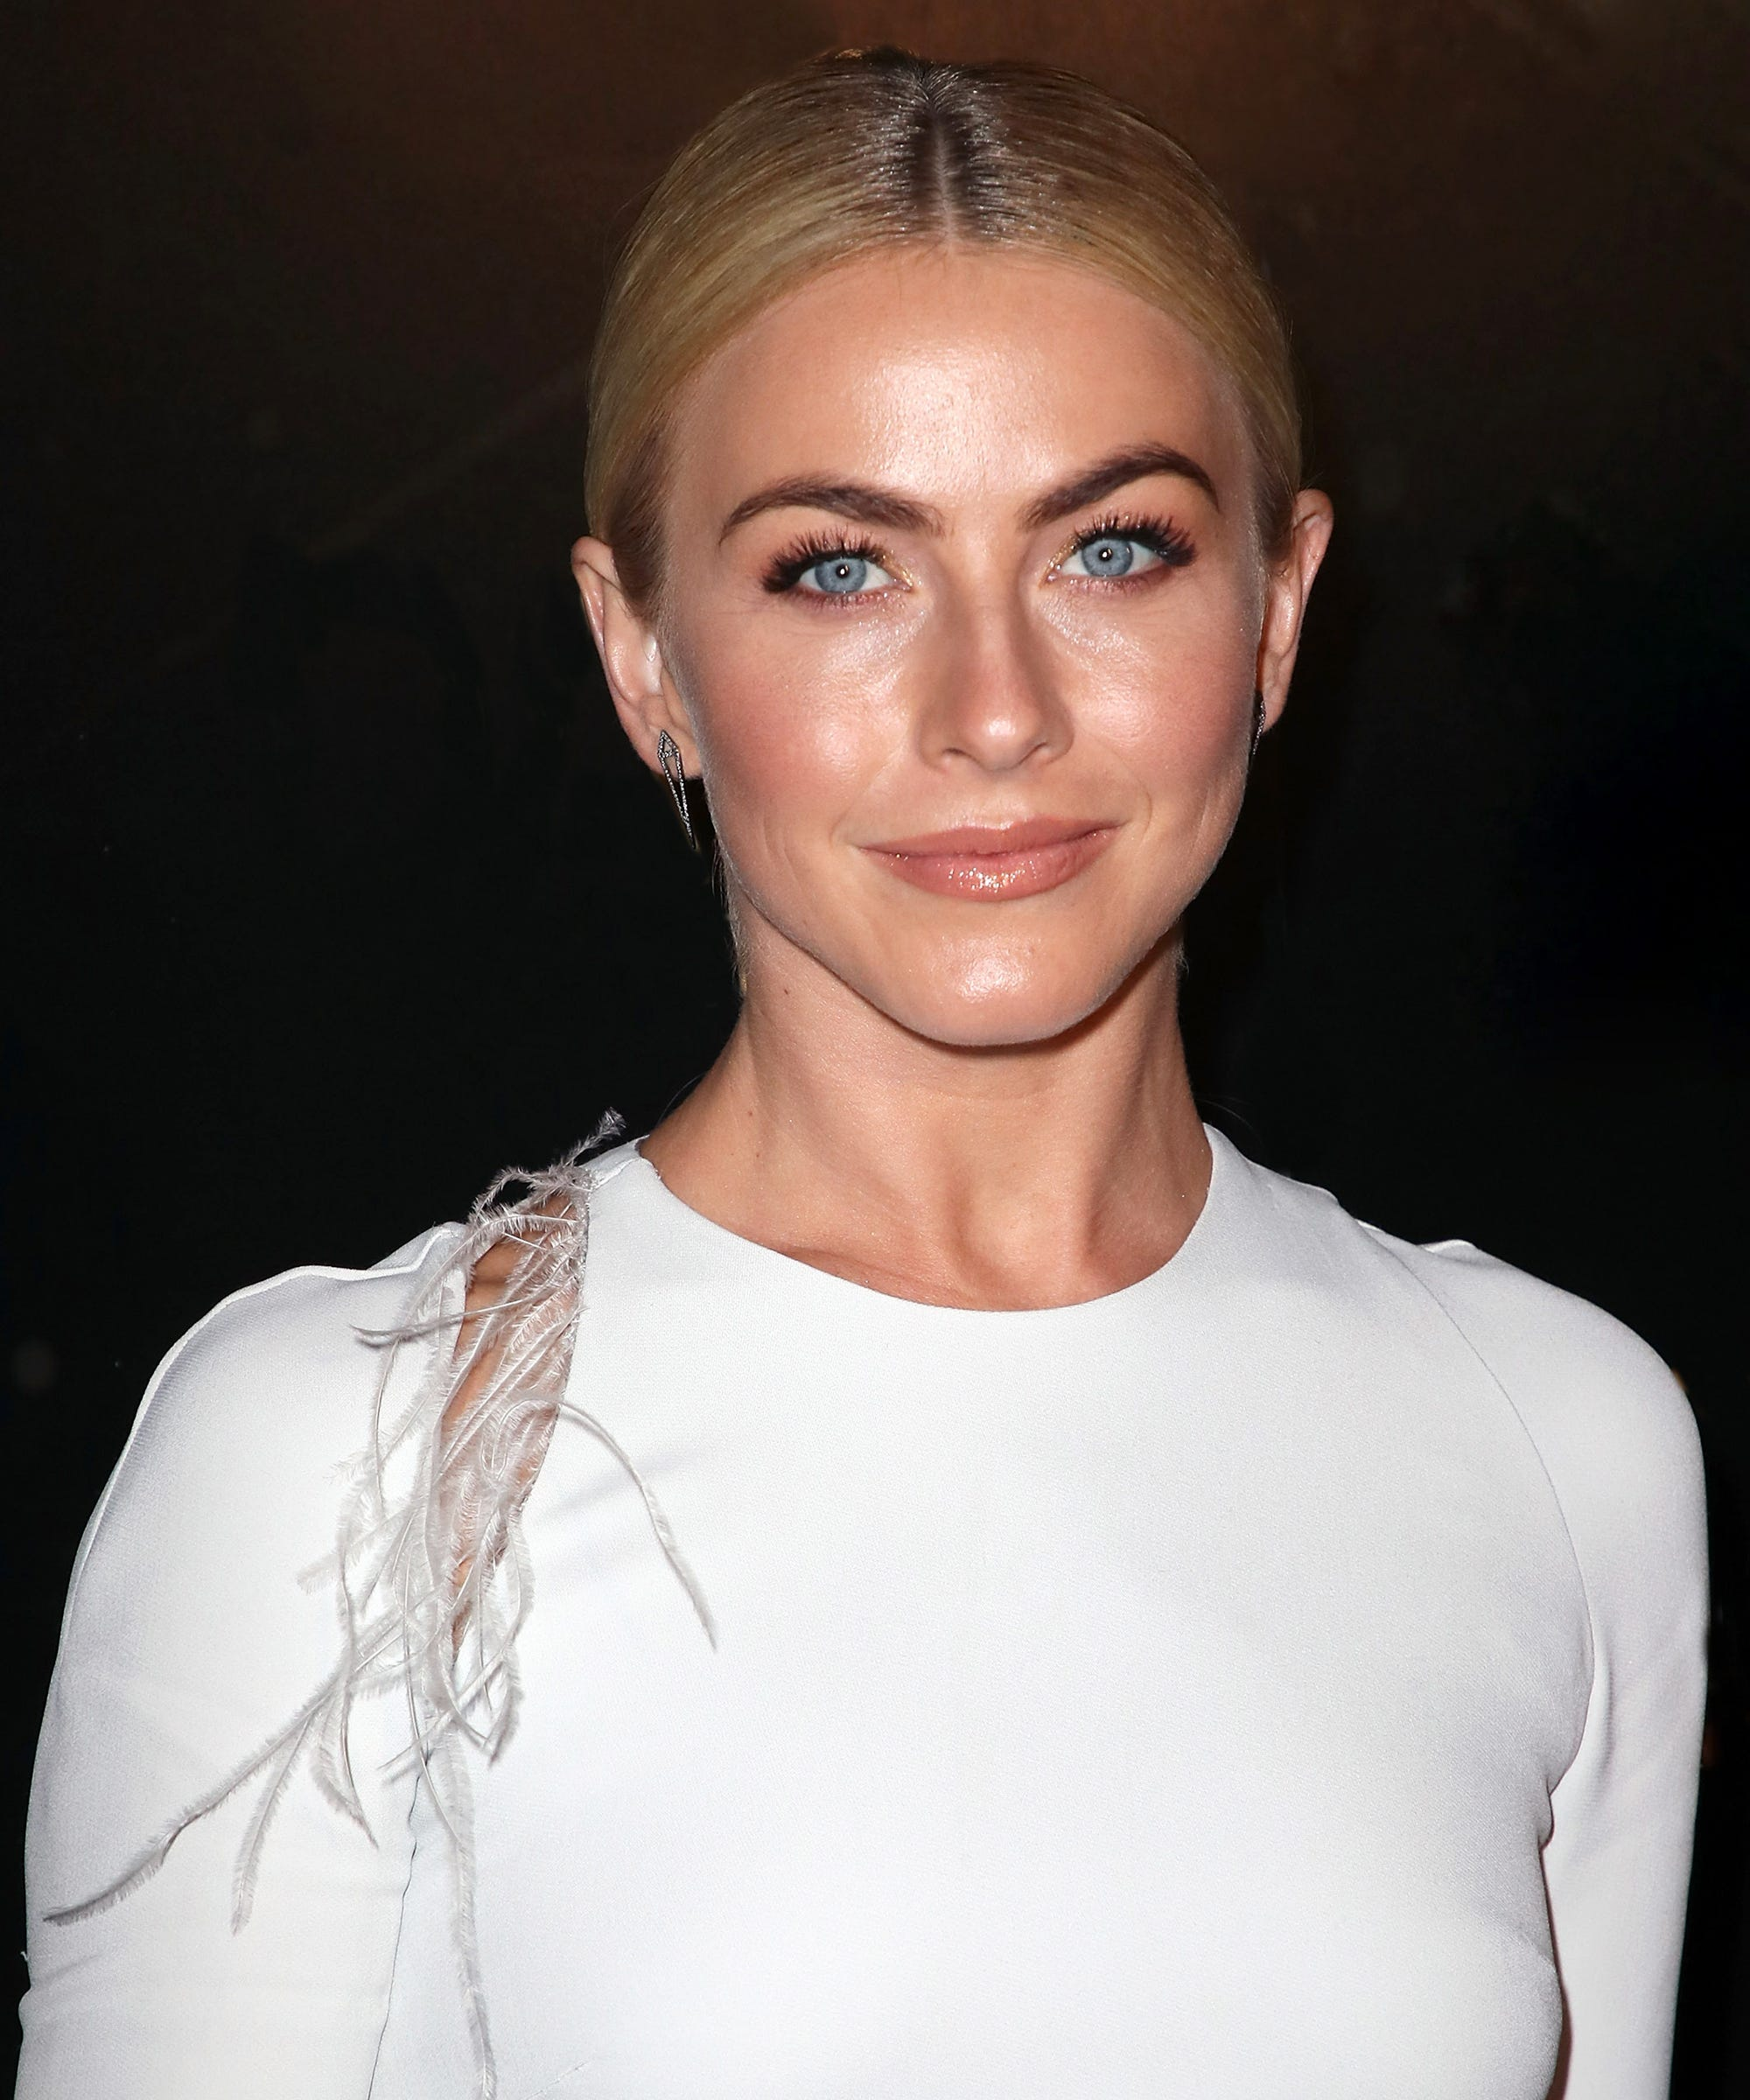 Julianne Hough Just Ditched Her Blonde Hair for This Stunning Shade forecast